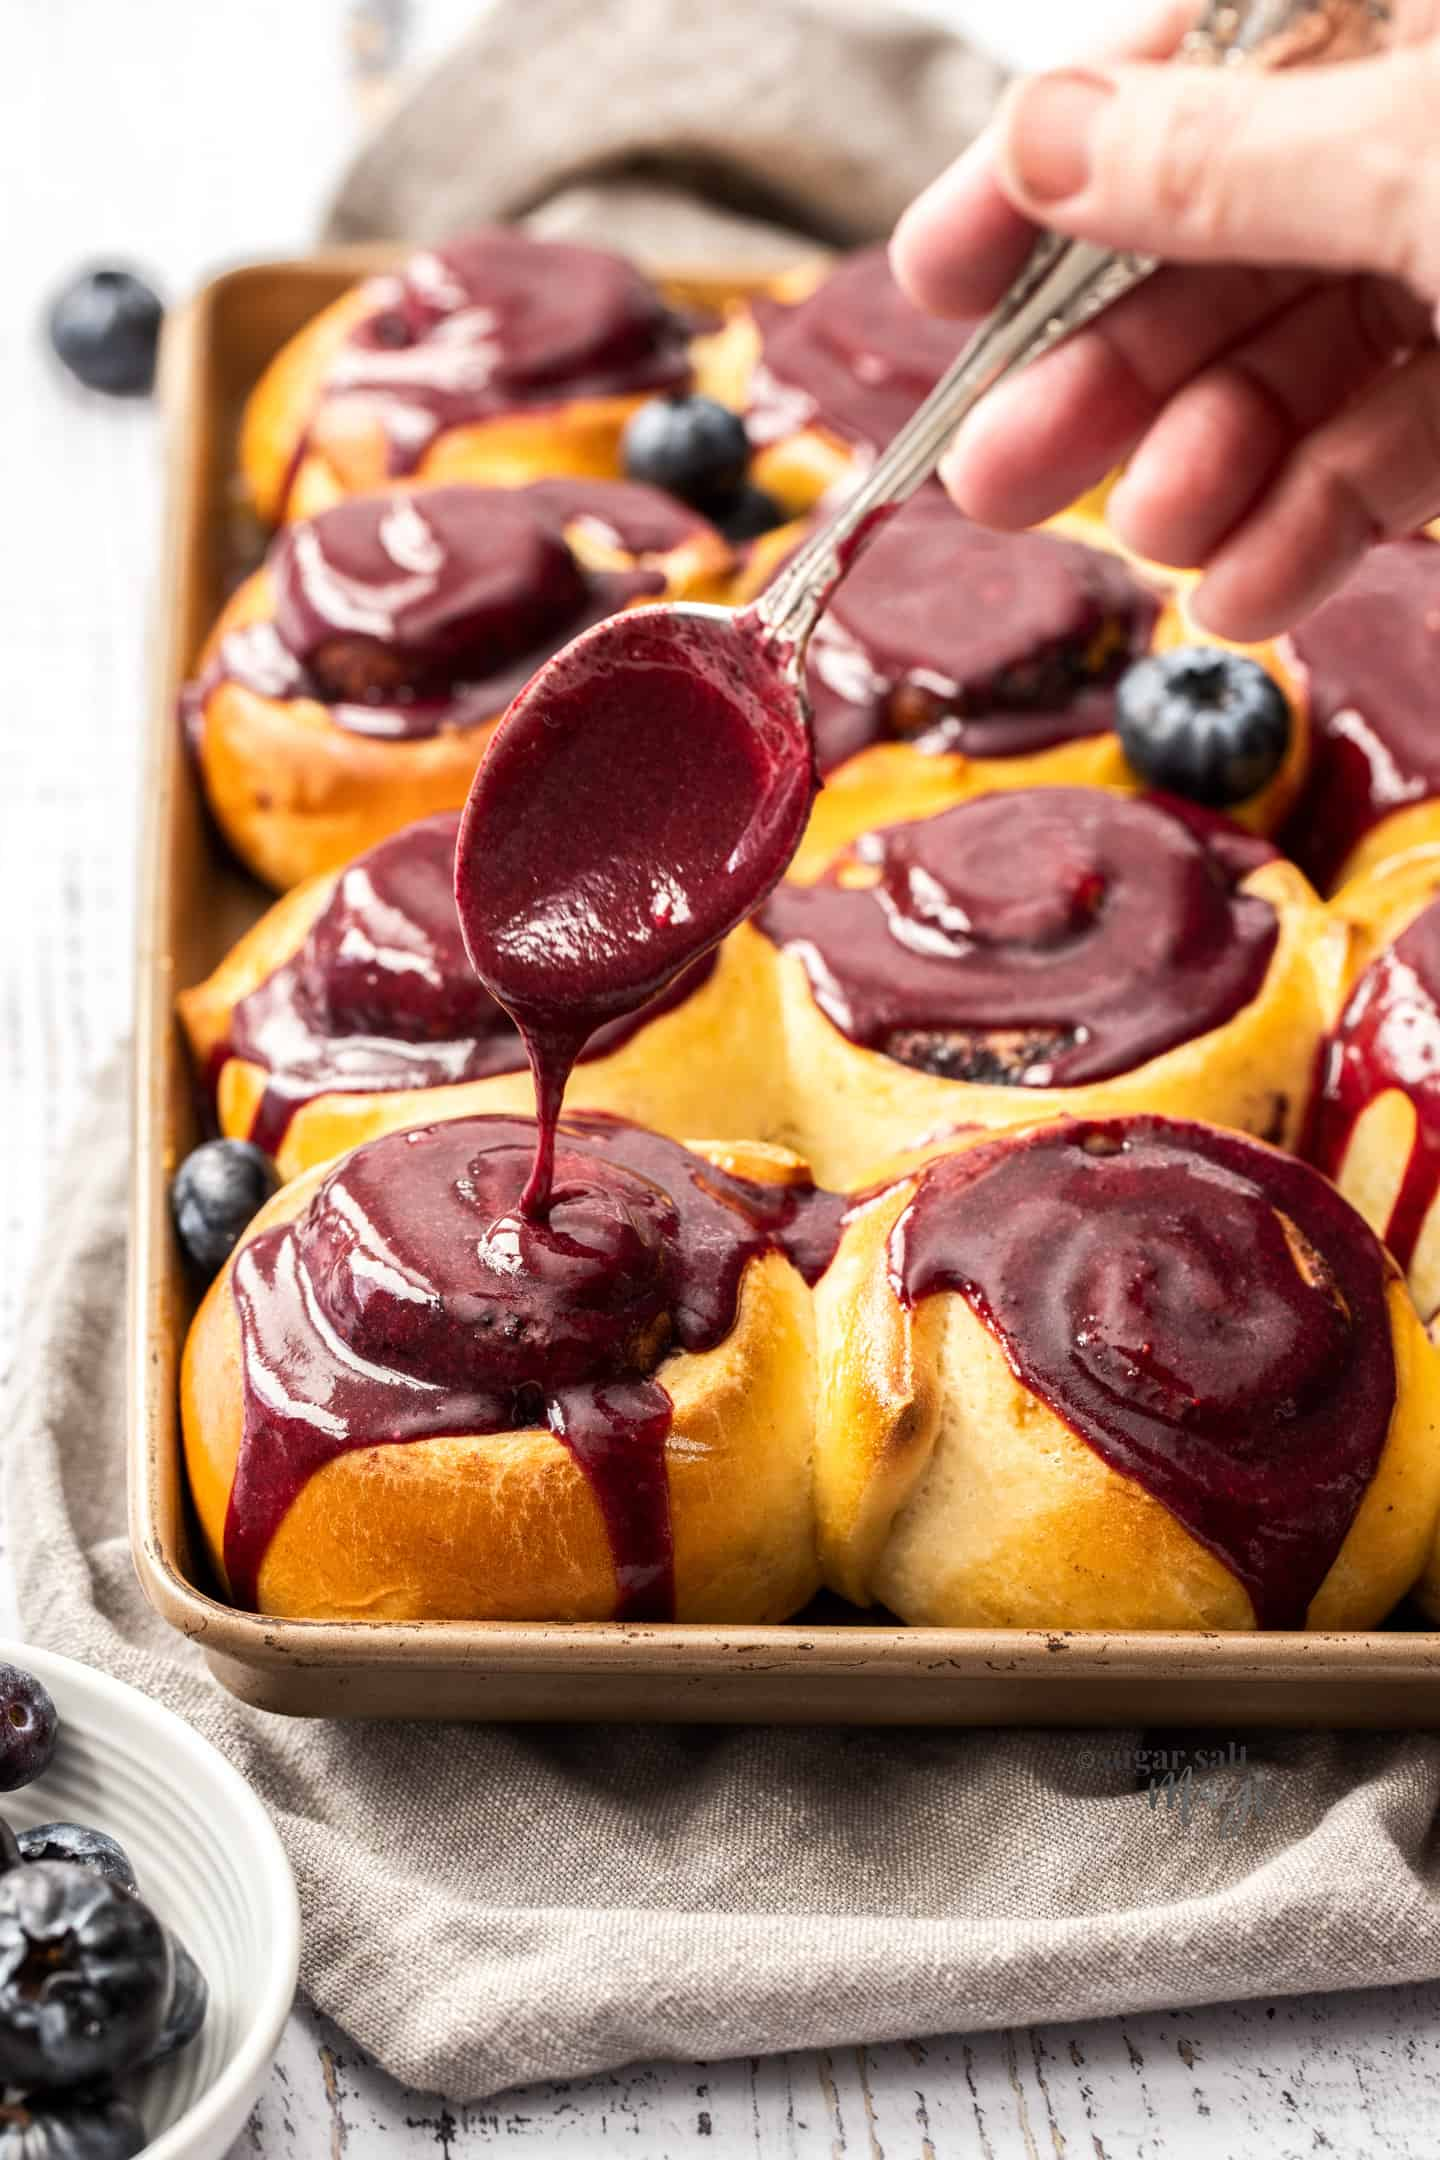 Blueberry glaze being drizzled over the top of cinnamon rolls in a baking tin with a spoon.